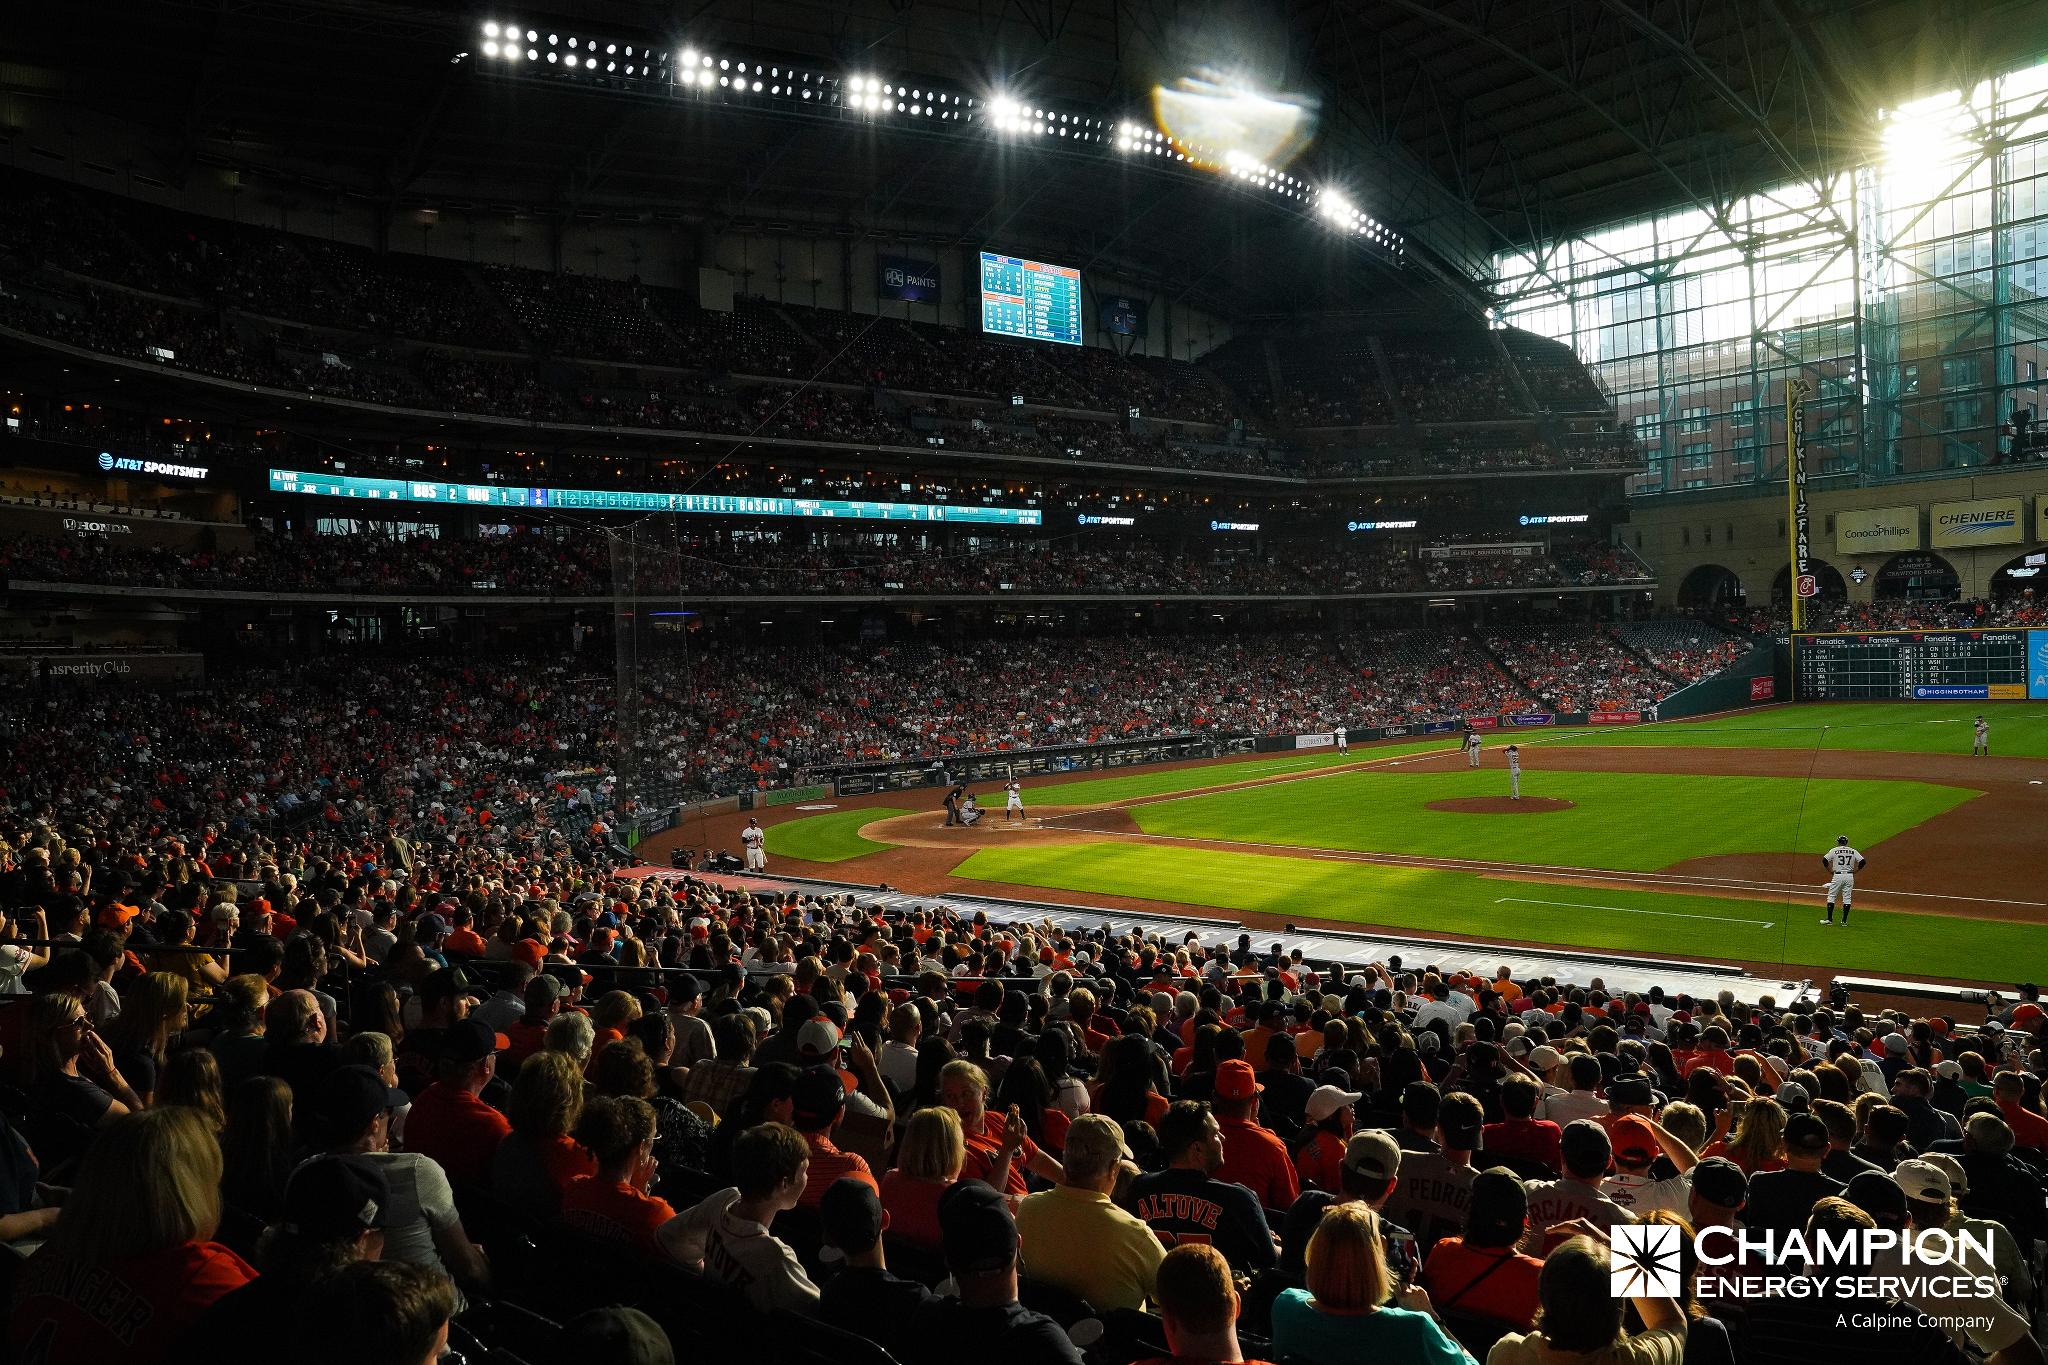 Tonight's @ChampionEnergy Roof Report: CLOSED  Details and gate info: https://t.co/IoC5gEZlYD https://t.co/TfEwkDzzGy